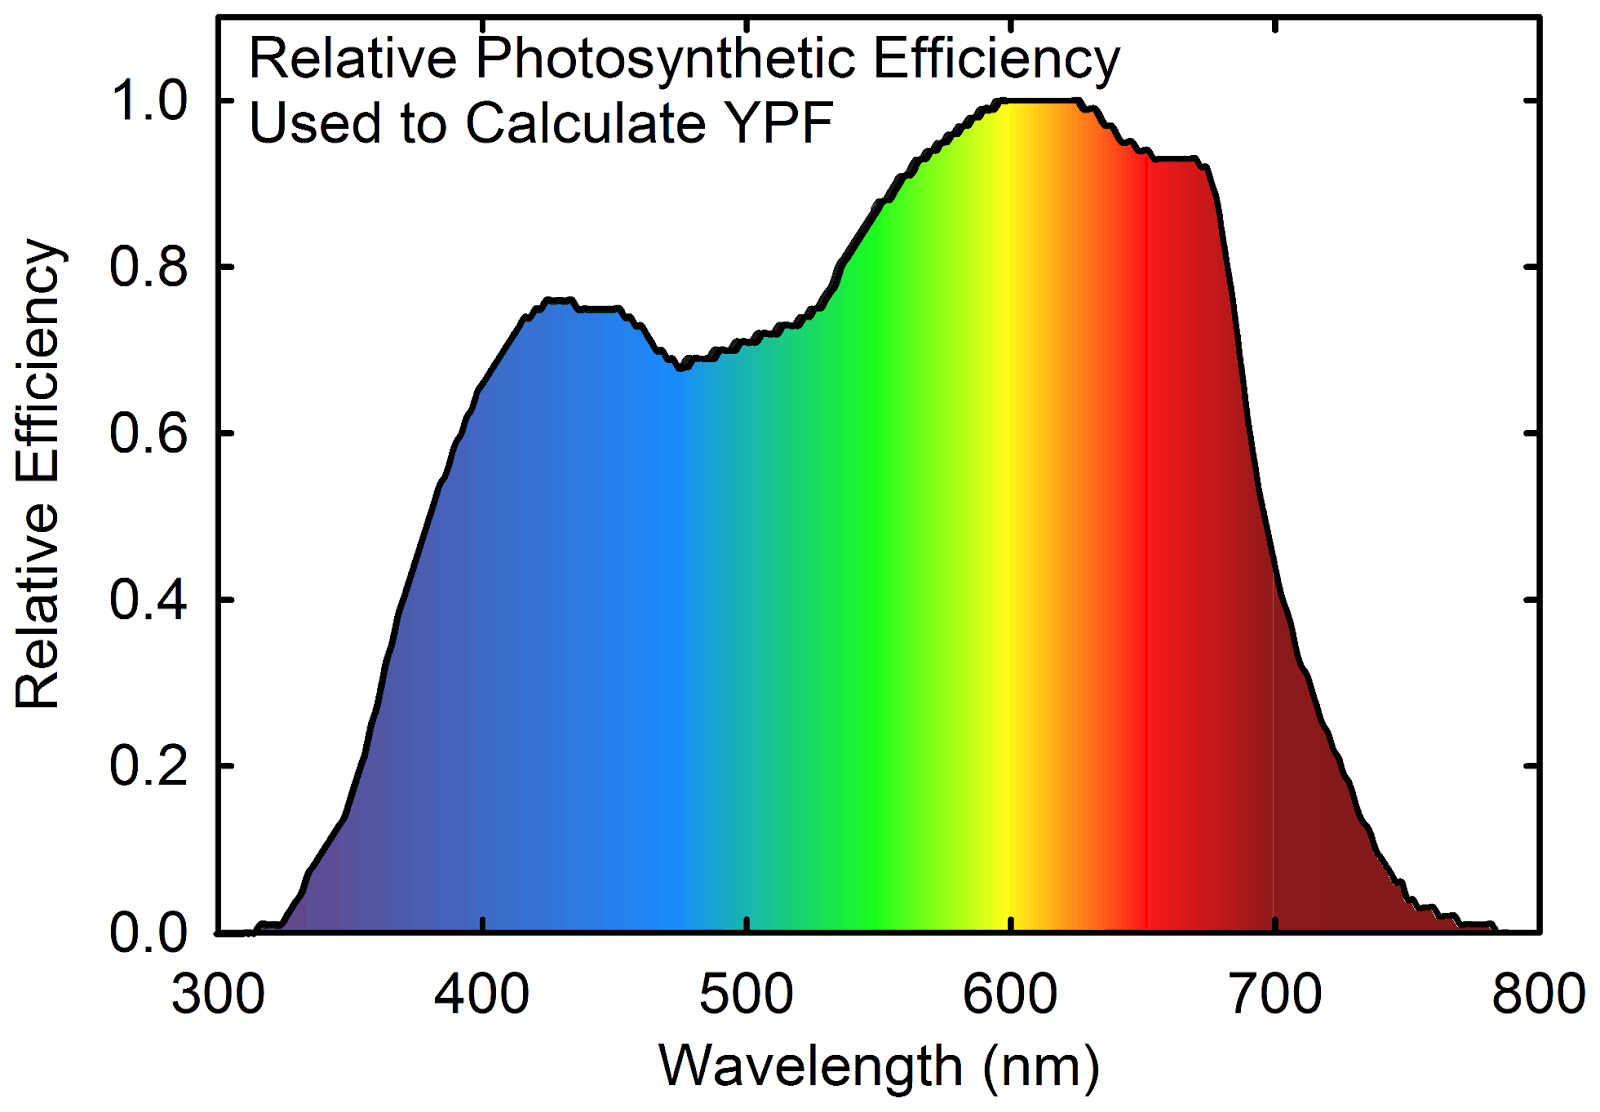 Effect of wavelength on relative photosynthesis